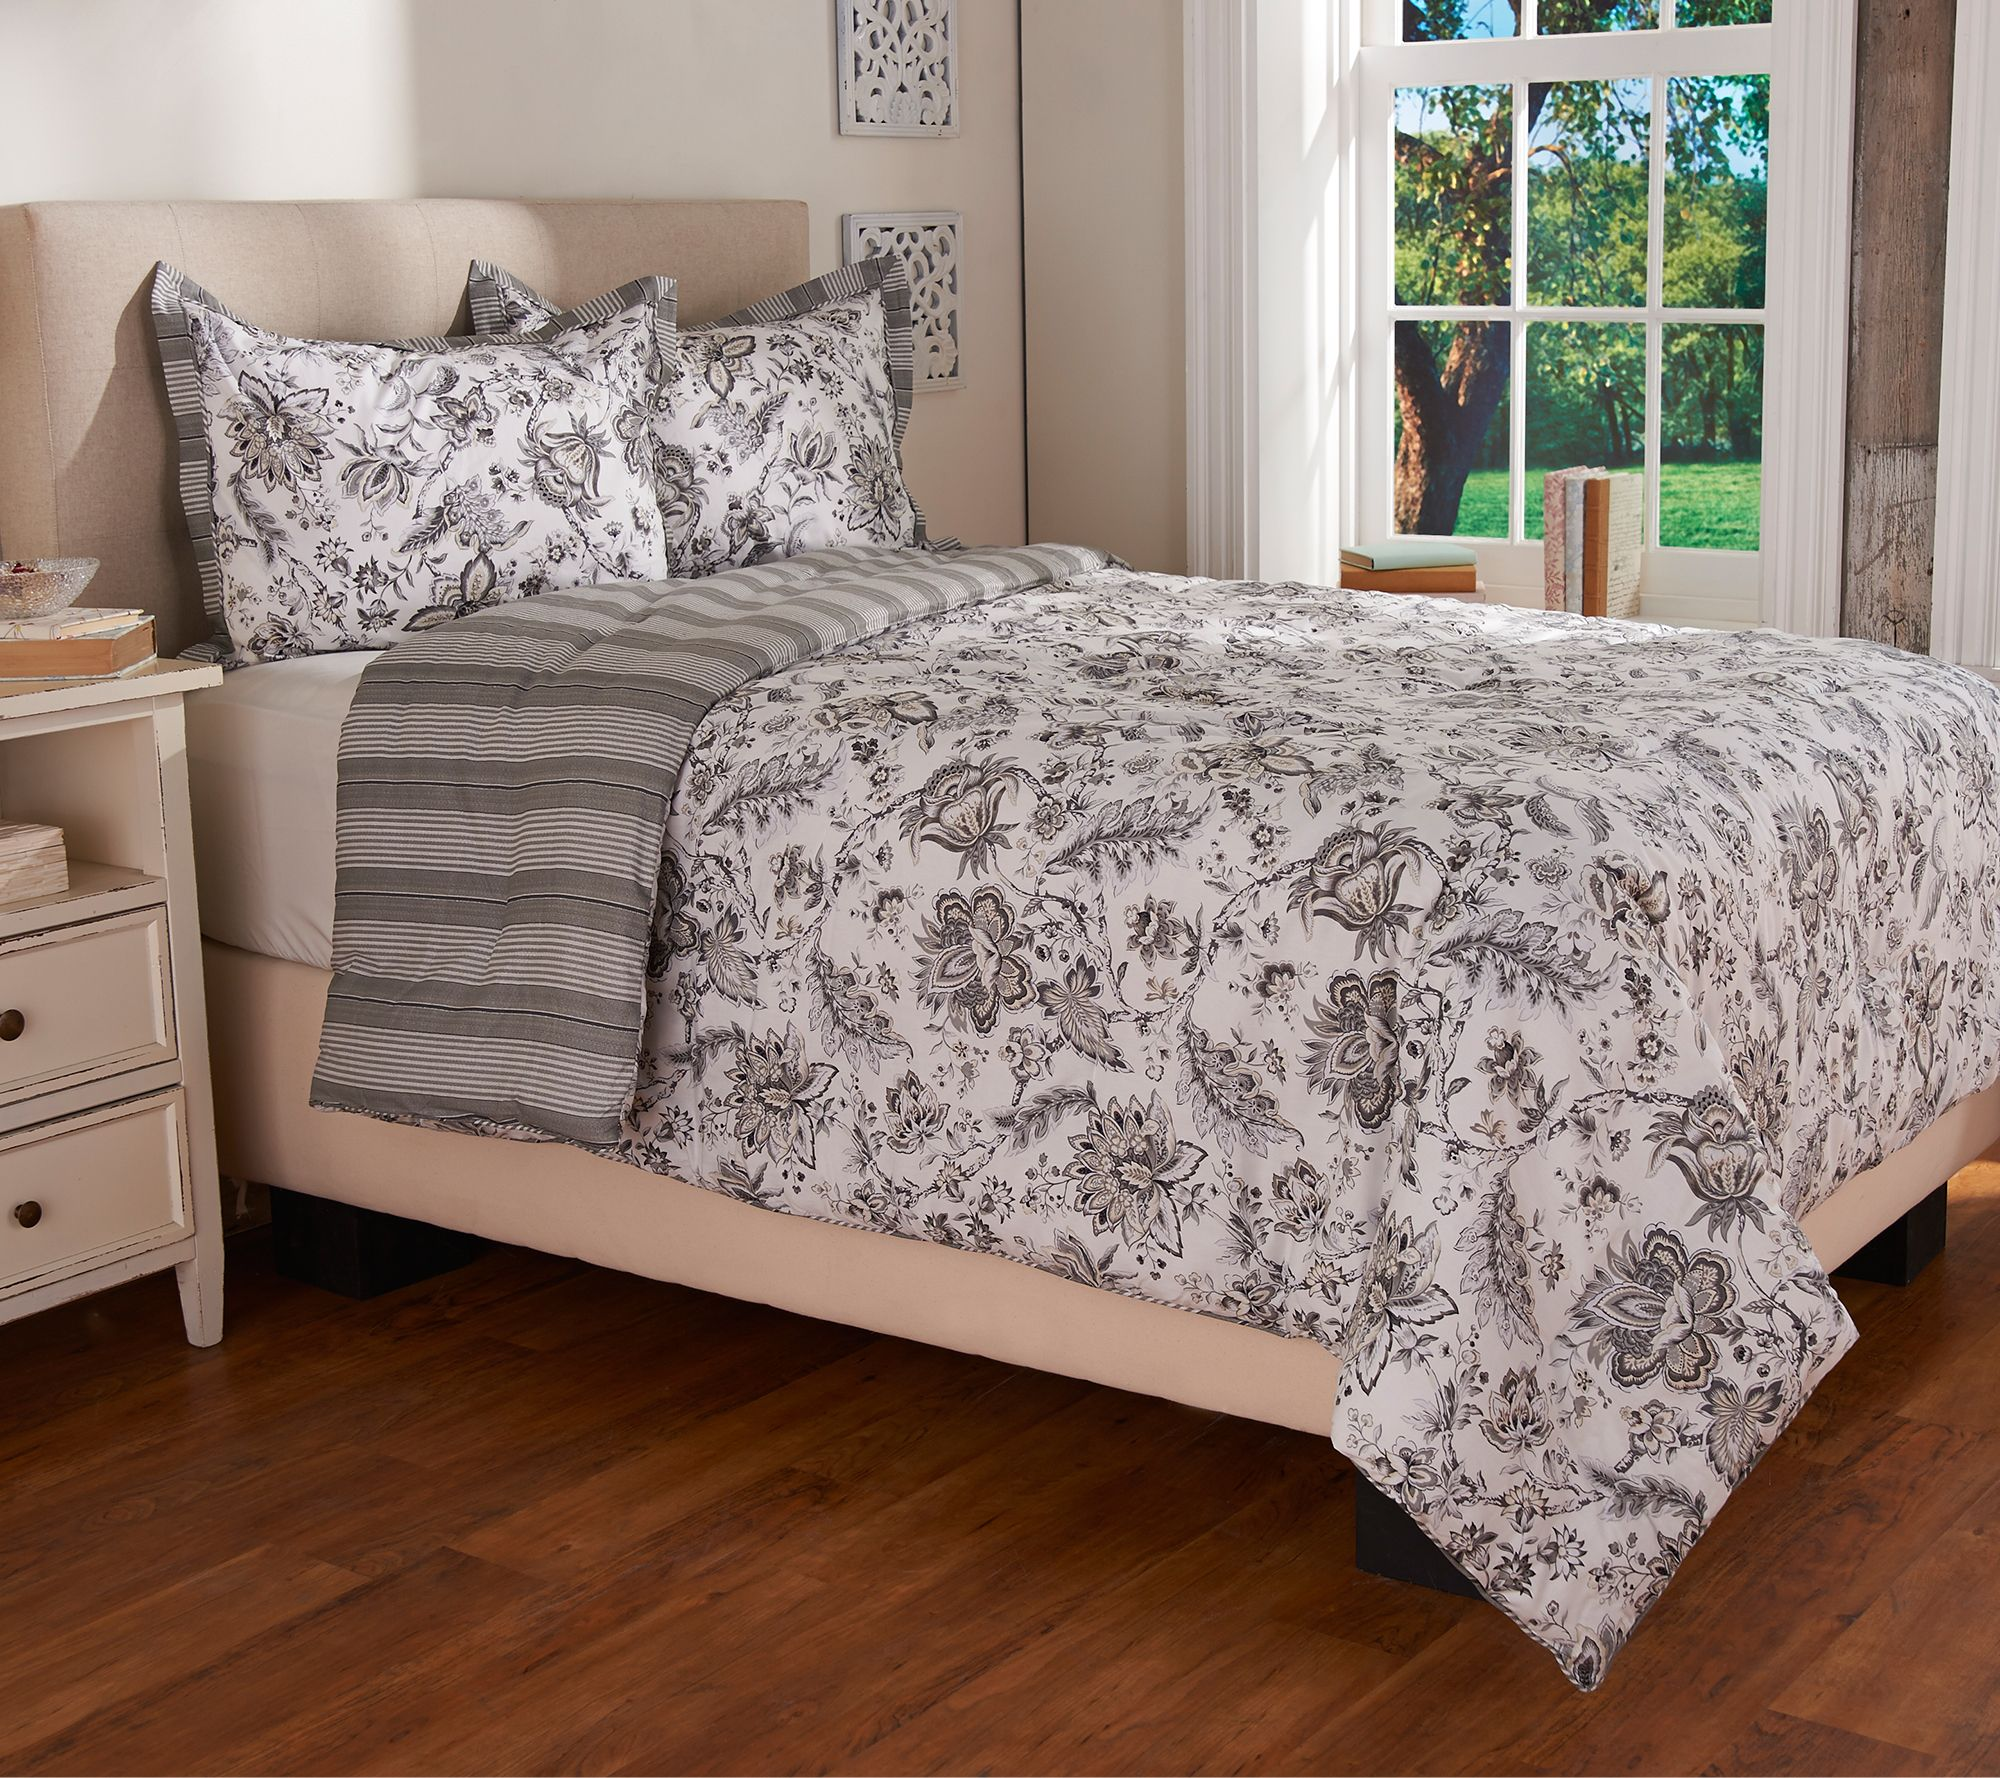 set vince master by camuto cfm hayneedle lille lillecomfortersetbyvincecamuto comforter product